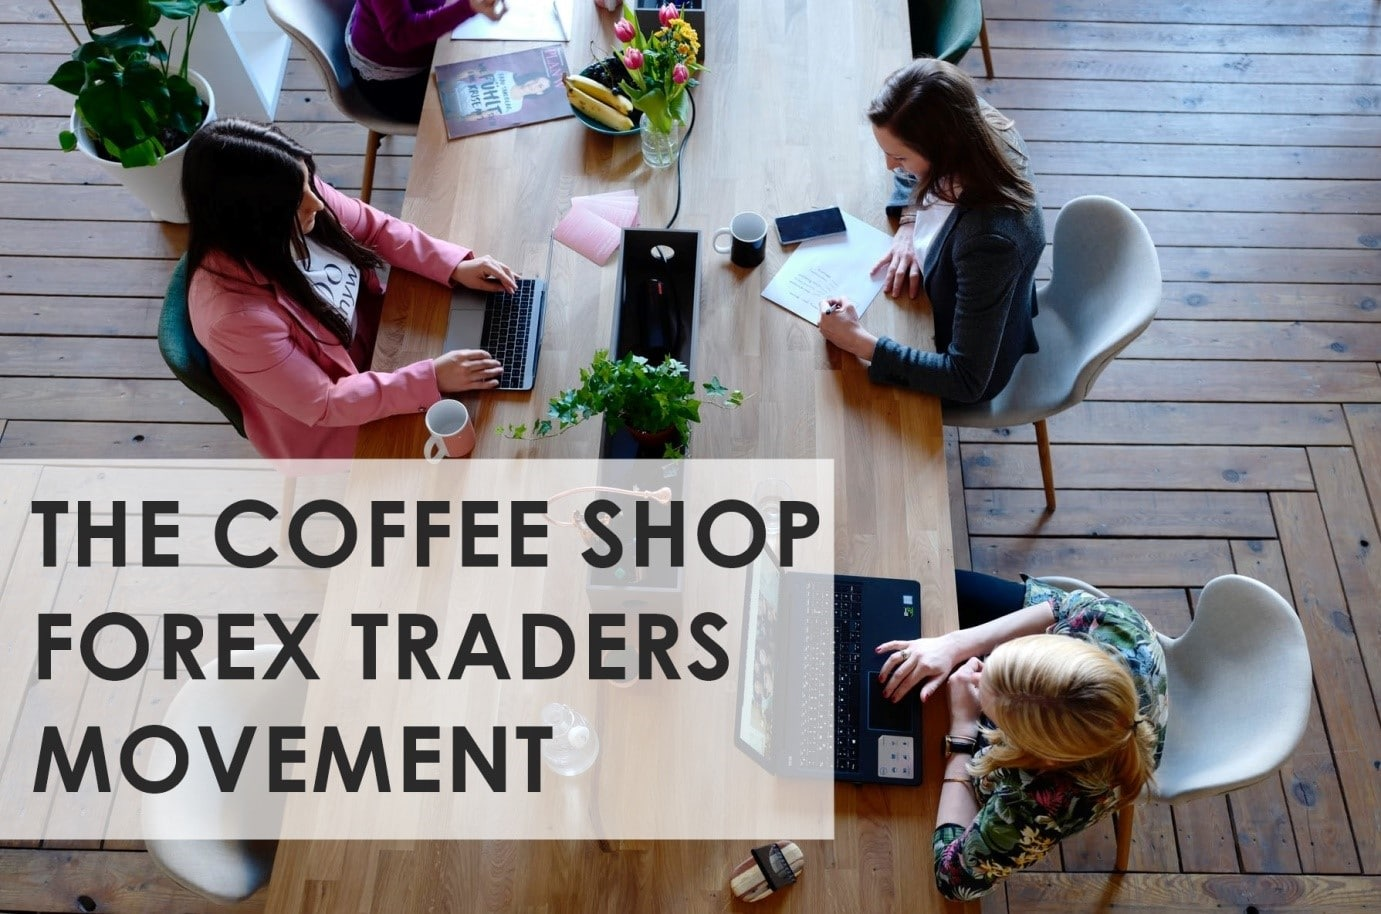 COFFEE SHOP FOREX TRADERS